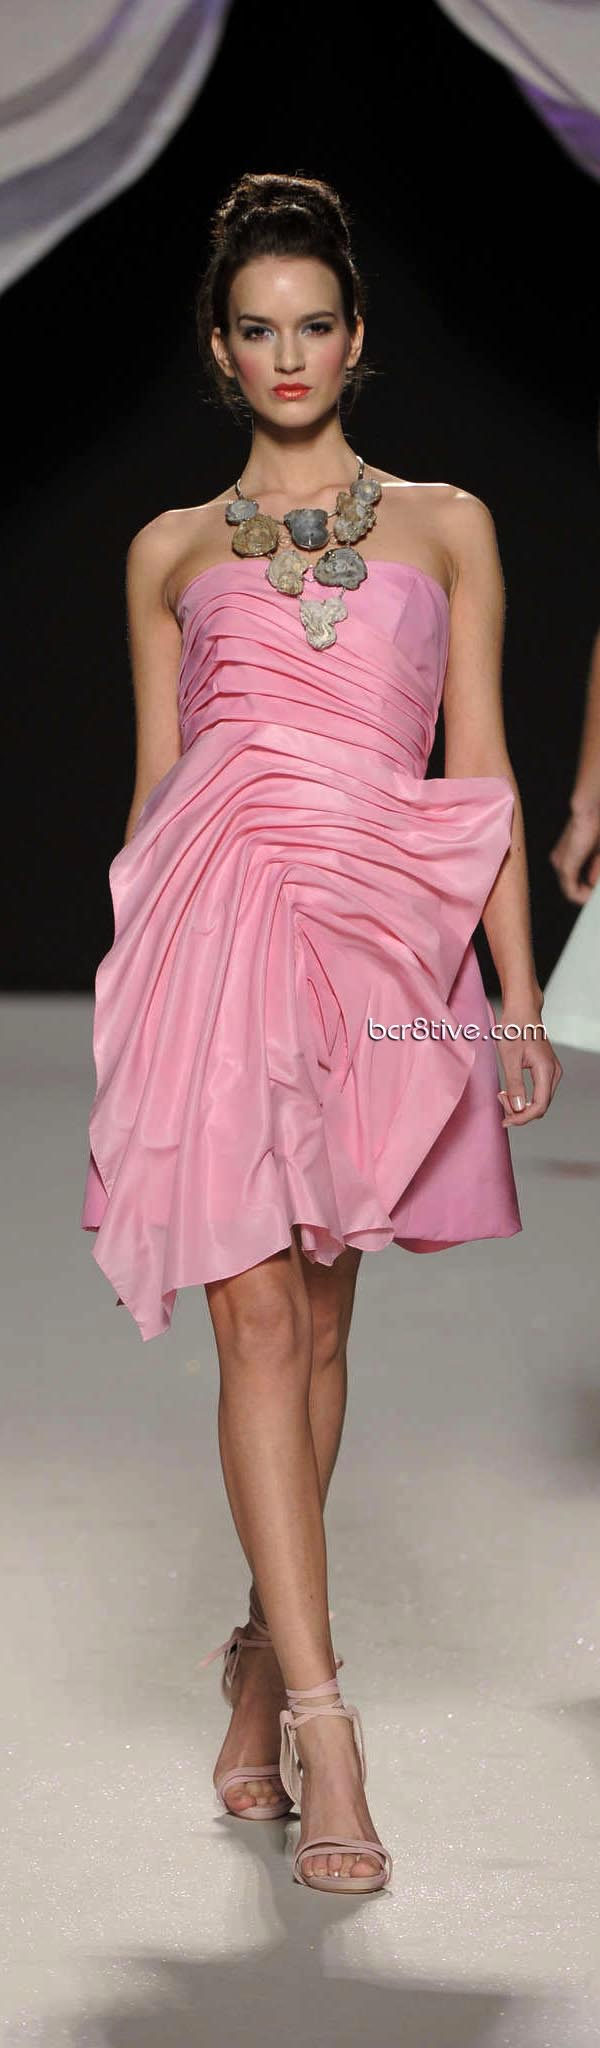 Gattinoni Spring Summer 2010 Couture